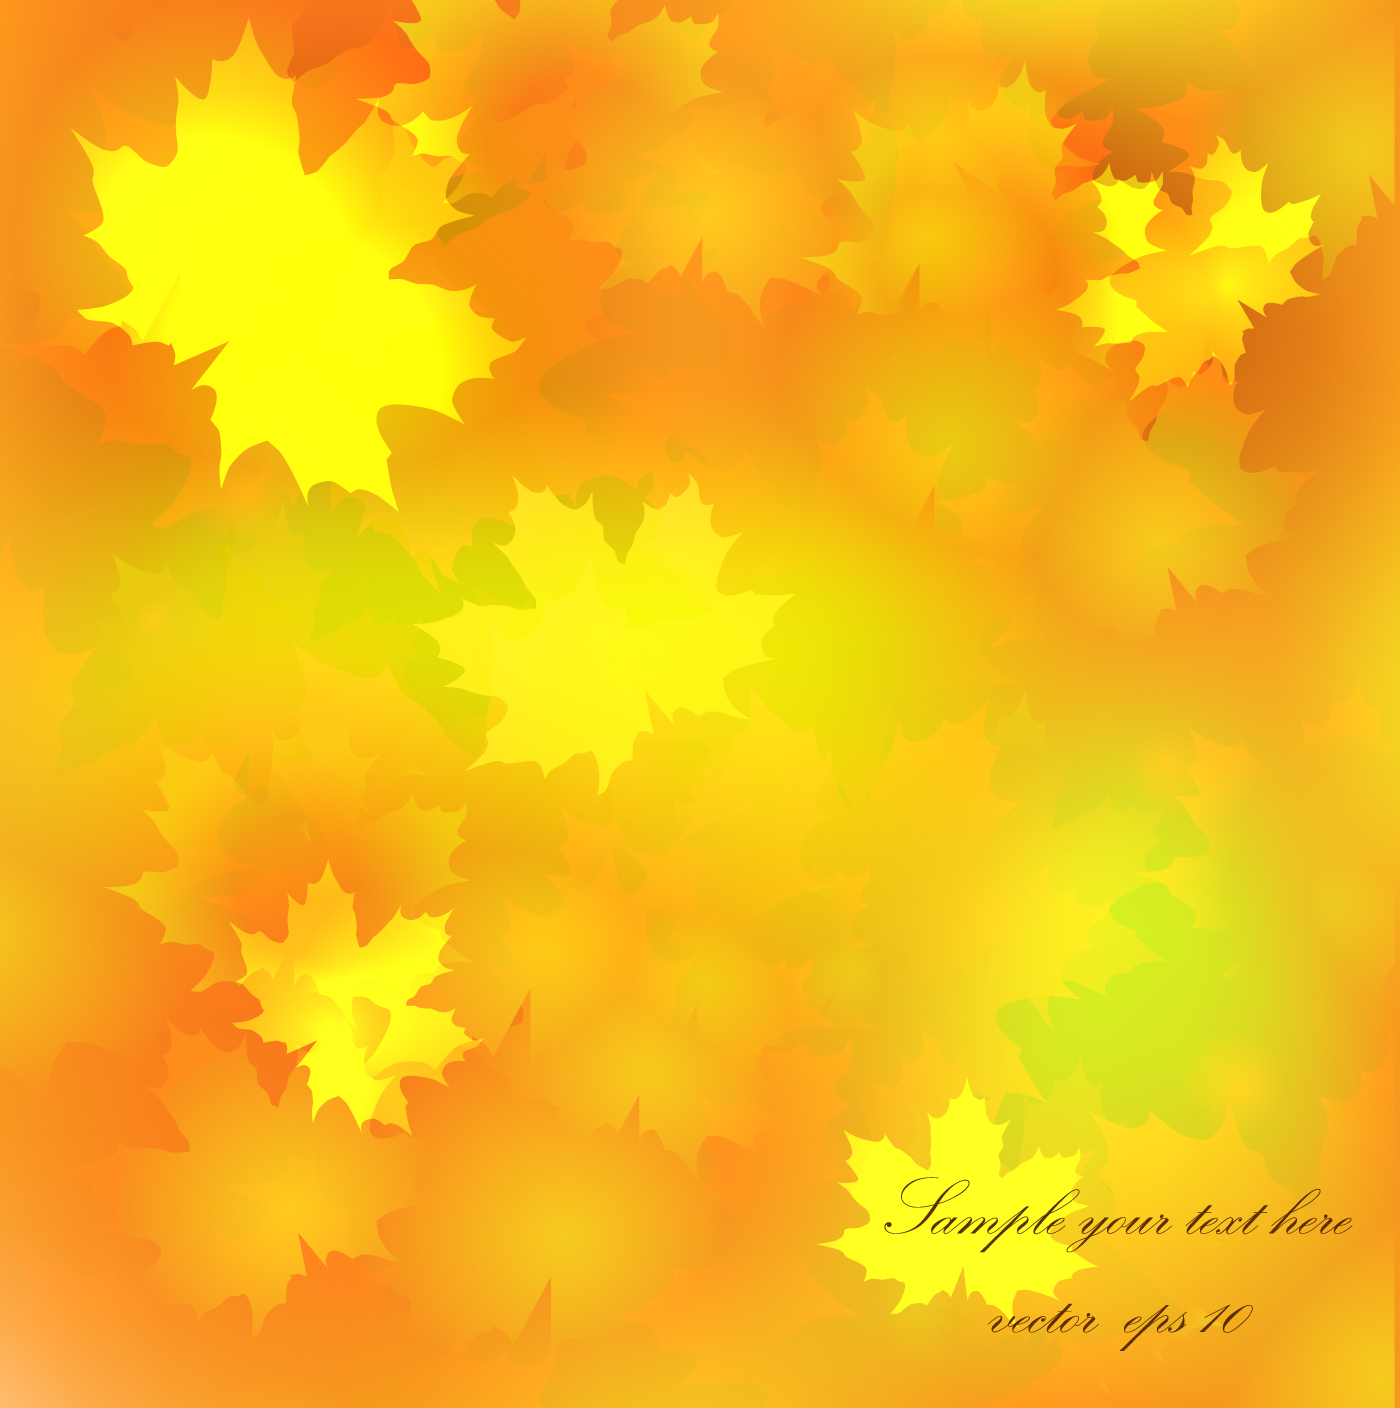 Autumn Golden Yellow Background Vector 07 Vector